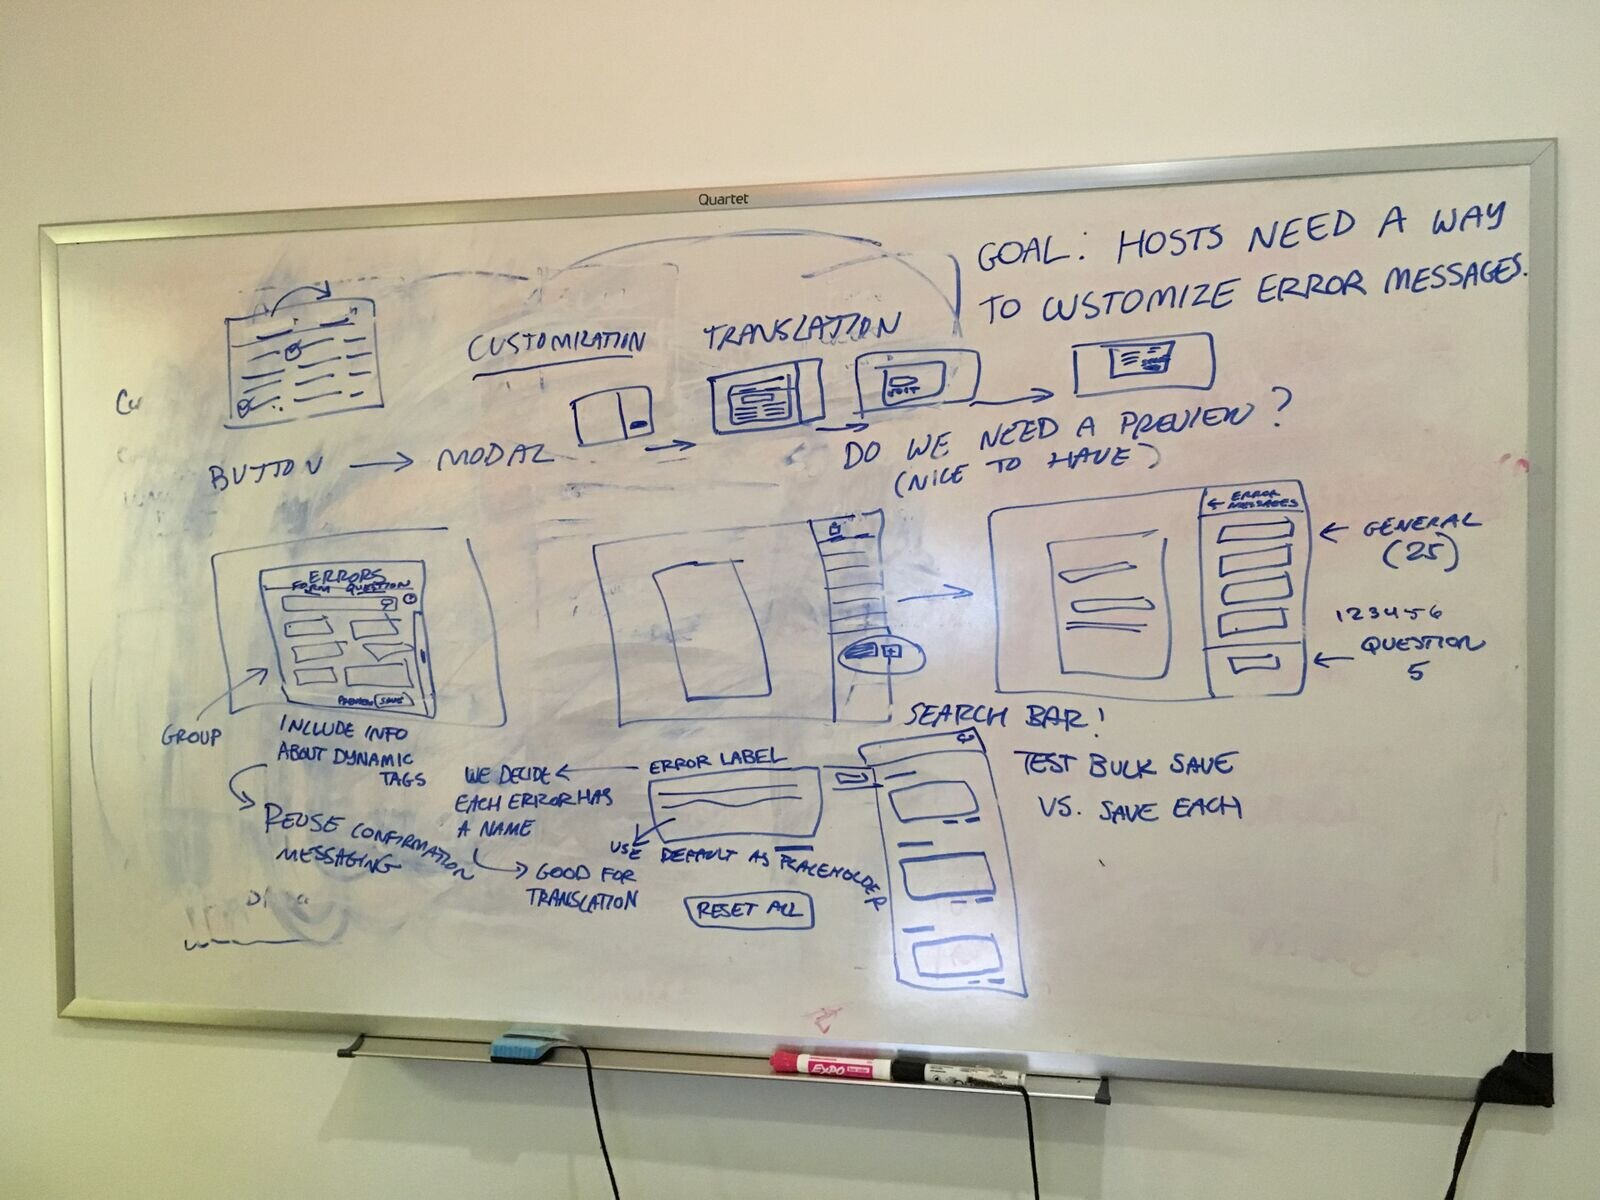 Whiteboarding/Brainstorming with the Development Team